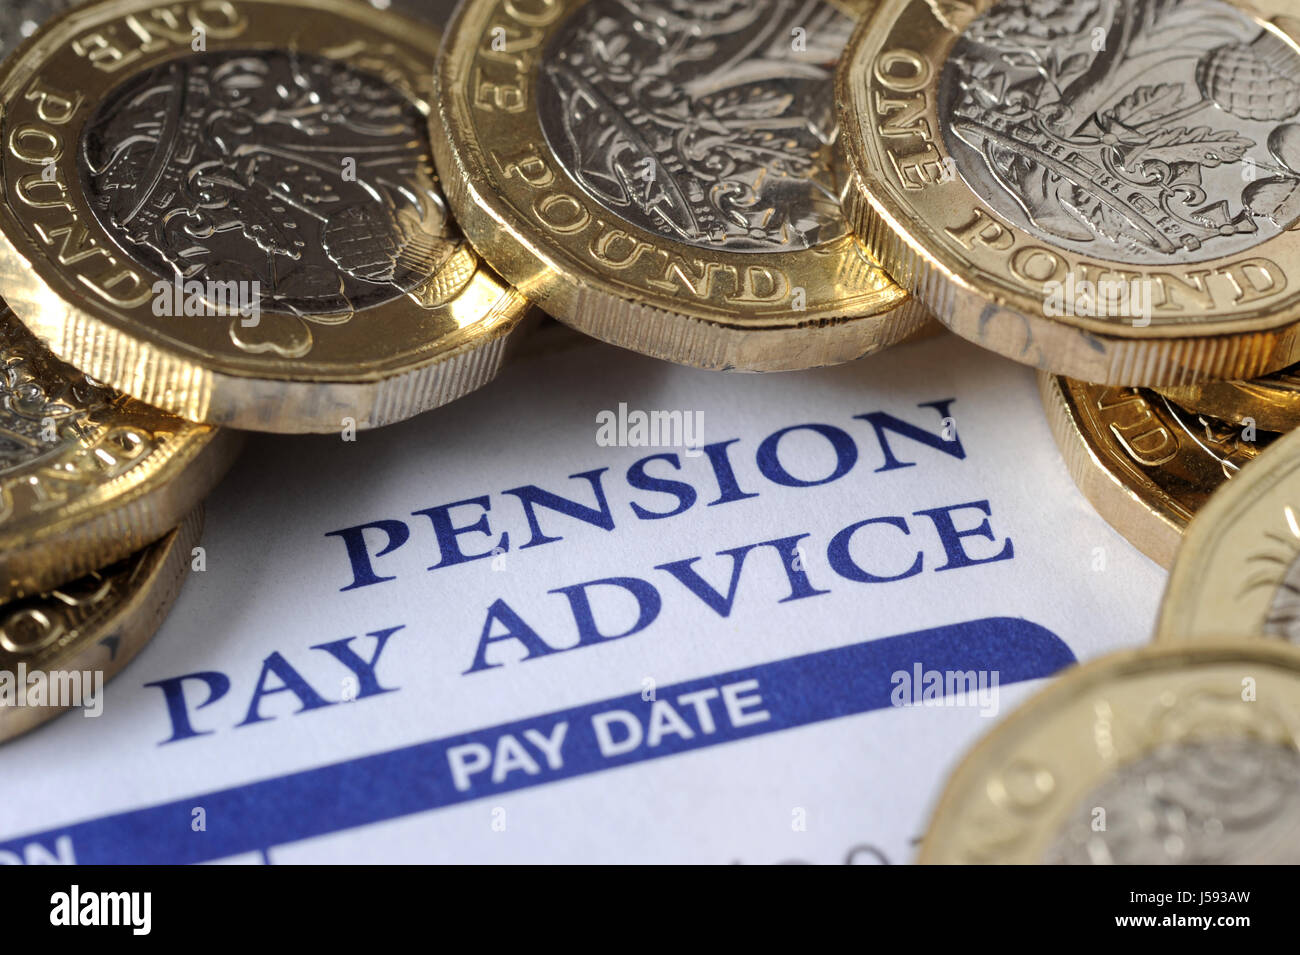 COMPANY PENSION PAY ADVICE SLIP WITH NEW ONE POUND COINS RE PENSIONS INCOME  RETIREMENT PENSIONERS WAGES